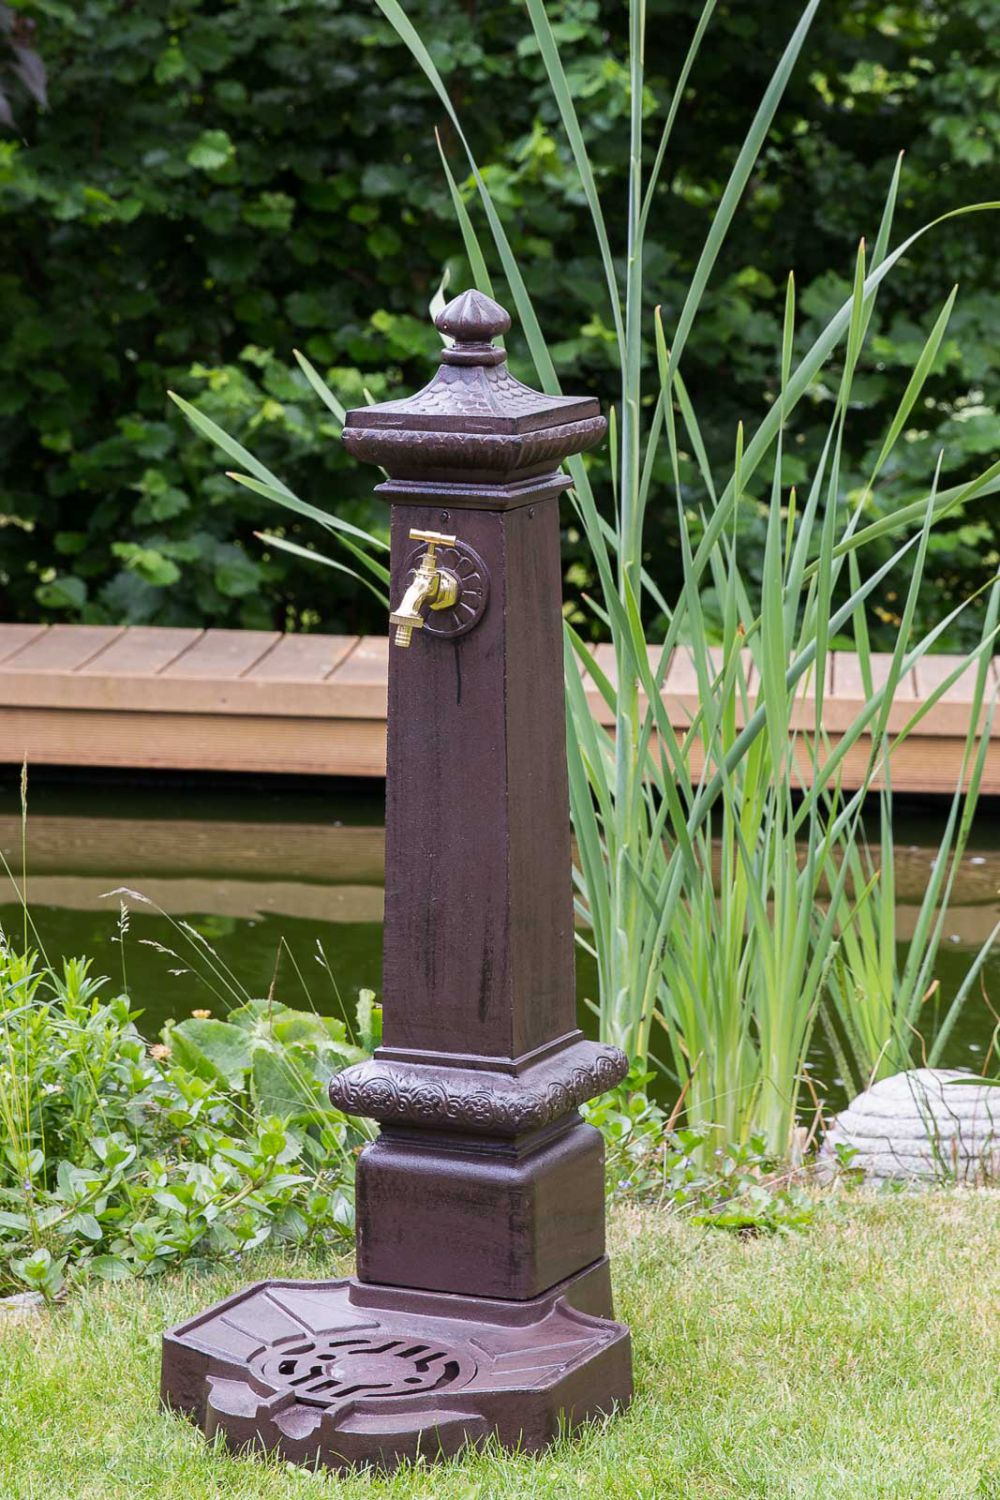 standbrunnen 100cm alu braun brunnen waschbecken garten im antik stil fountain ebay. Black Bedroom Furniture Sets. Home Design Ideas